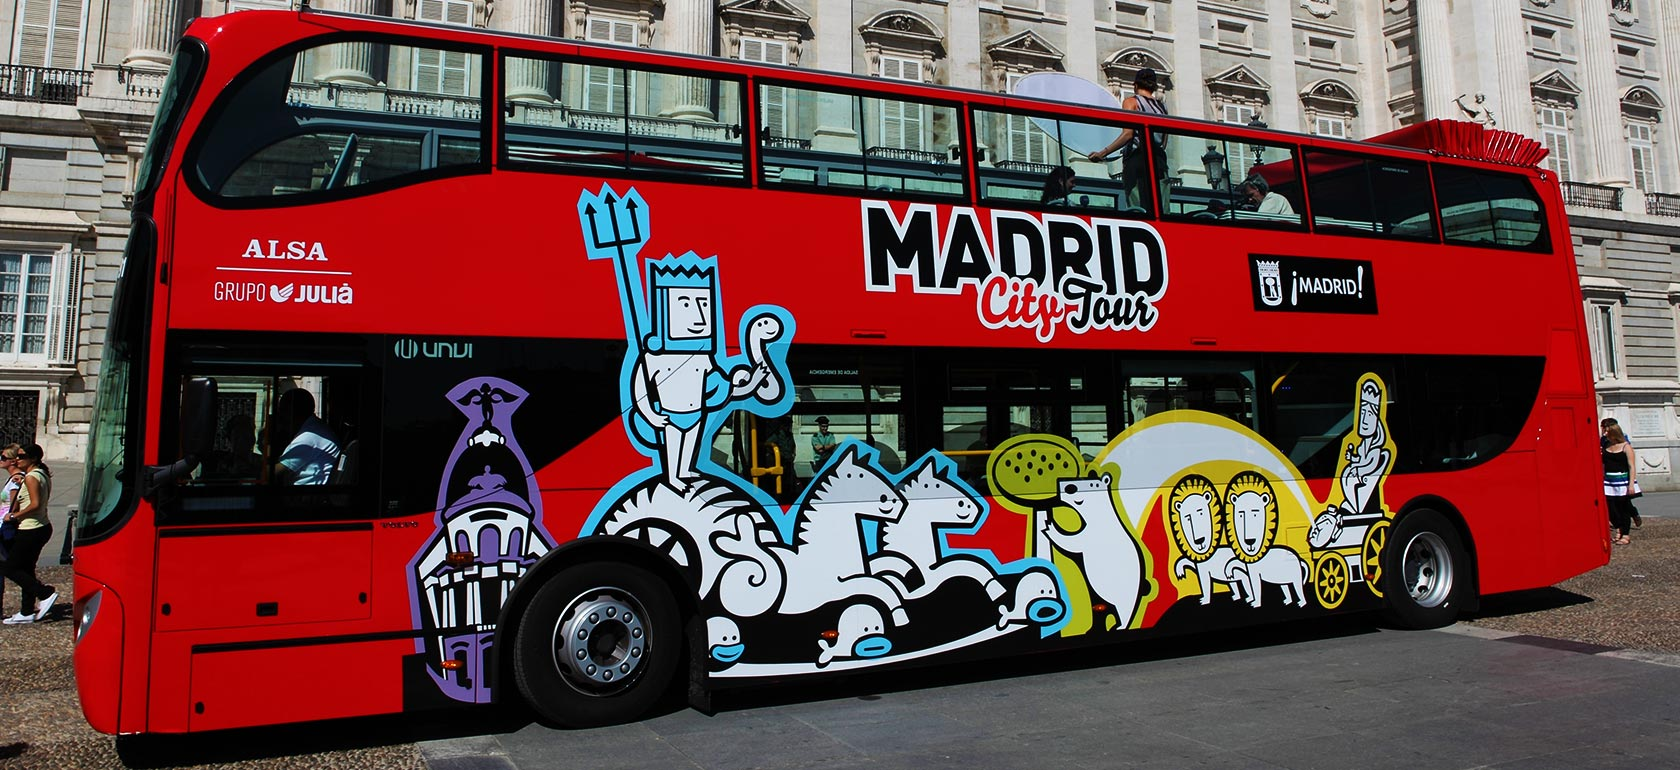 Hop on Hop off Bus Madrid (MADMHOHO)